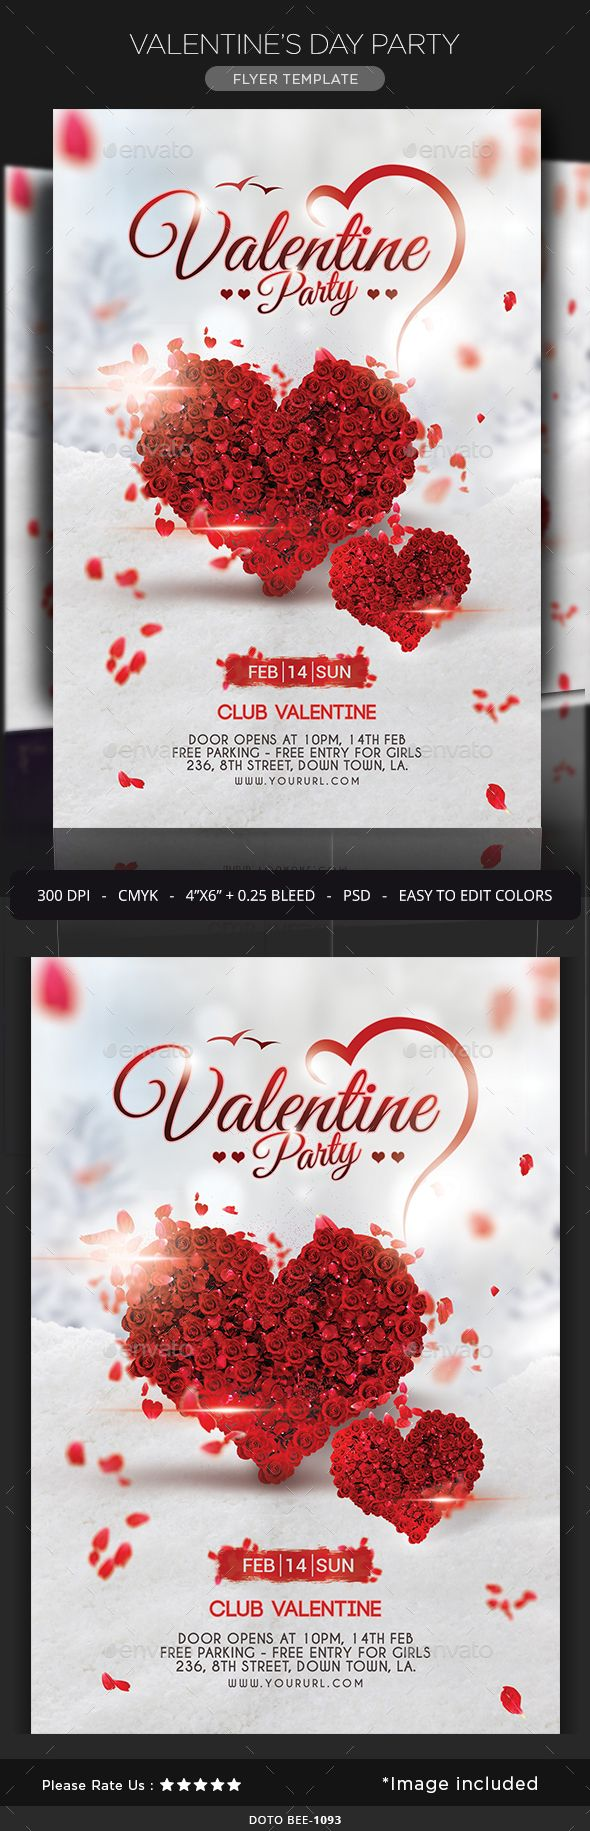 Valentine's Day Party Flyer — Photoshop PSD #beer #mardi gras • Available here → https://graphicriver.net/item/valentines-day-party-flyer/14487663?ref=pxcr